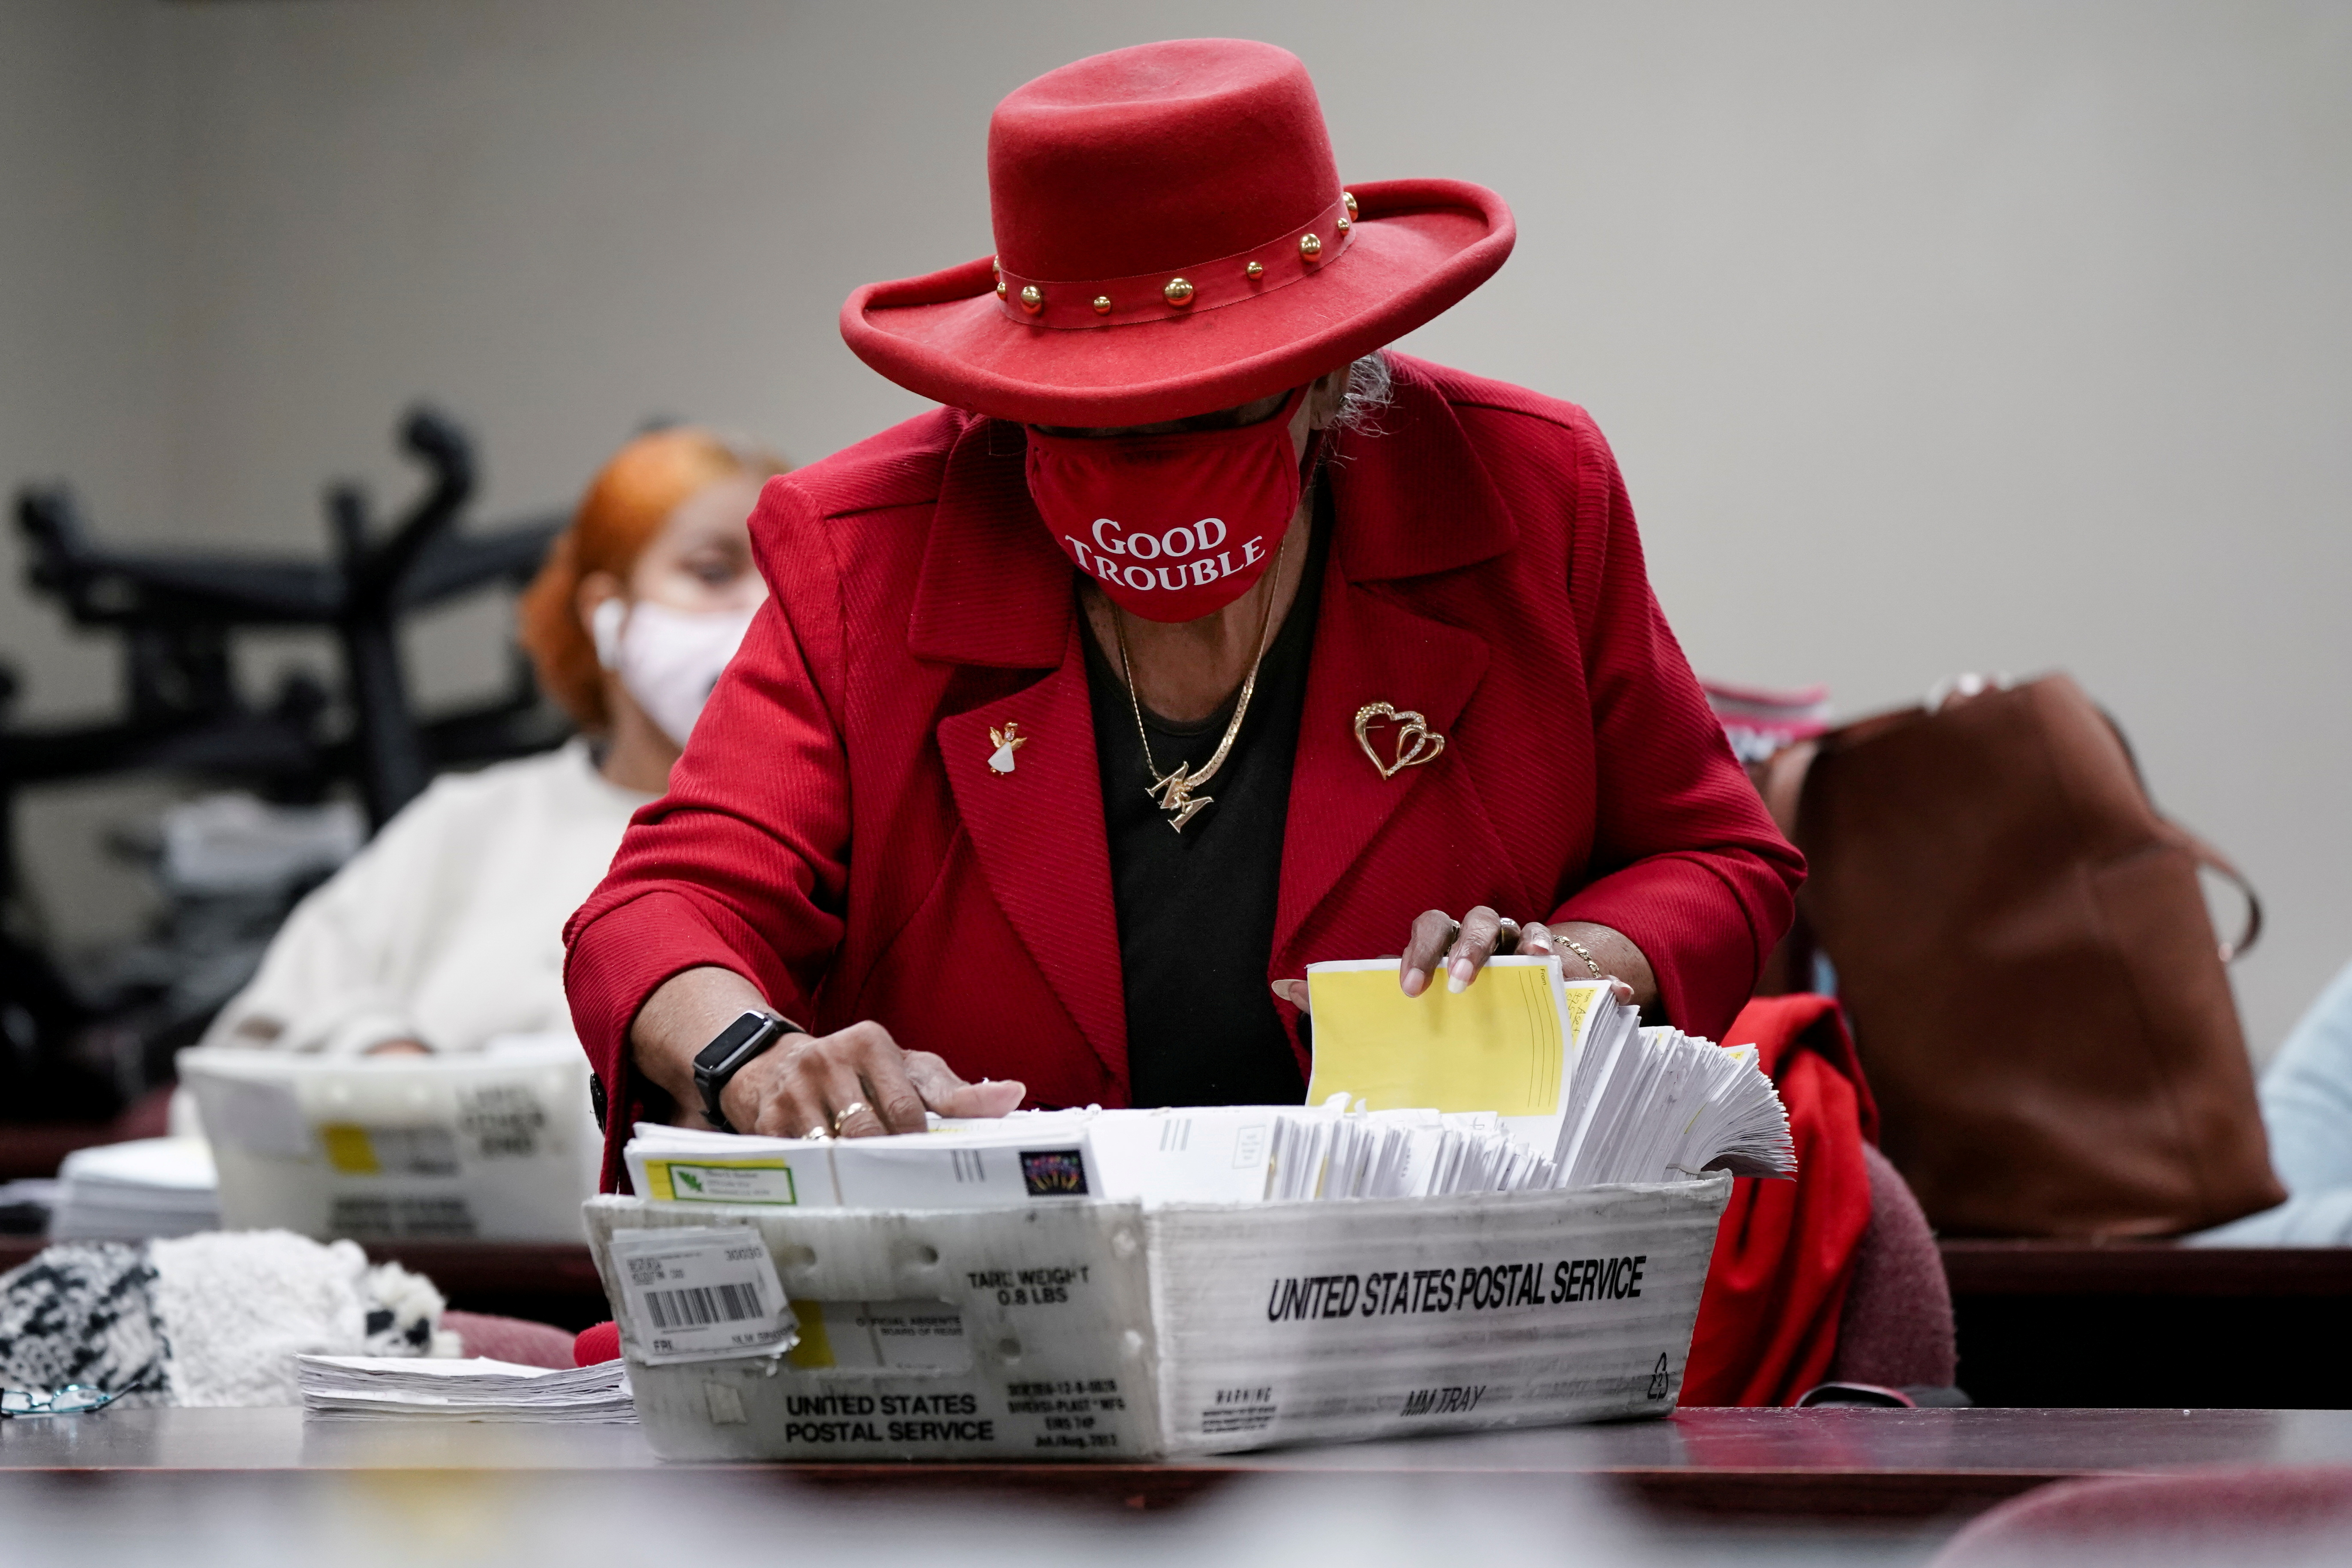 A DeKalb County election worker wearing a 'Good Trouble' facemask sorts empty absentee ballot envelopes following the U.S. Senate runoff elections in Decatur, Georgia, U.S., January 6, 2021.  REUTERS/Elijah Nouvelage/File Photo